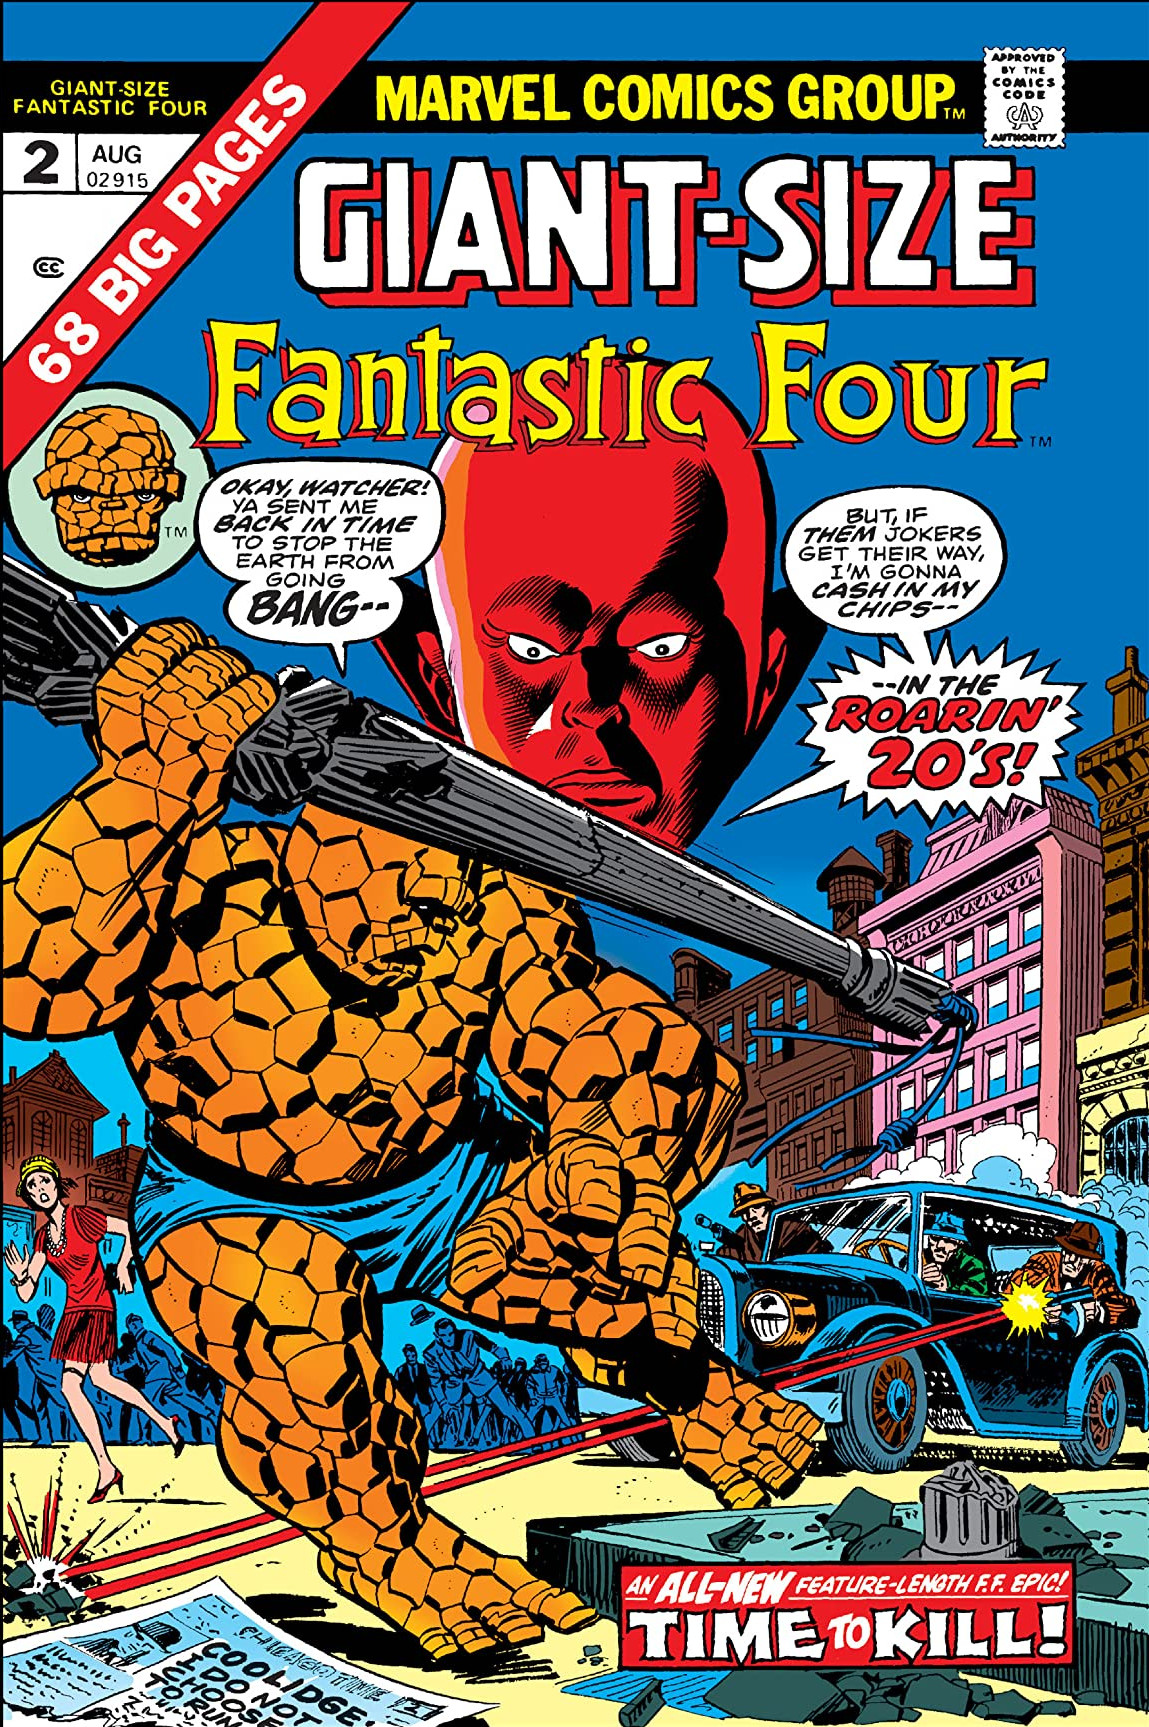 Giant-Size Fantastic Four Vol 1 2